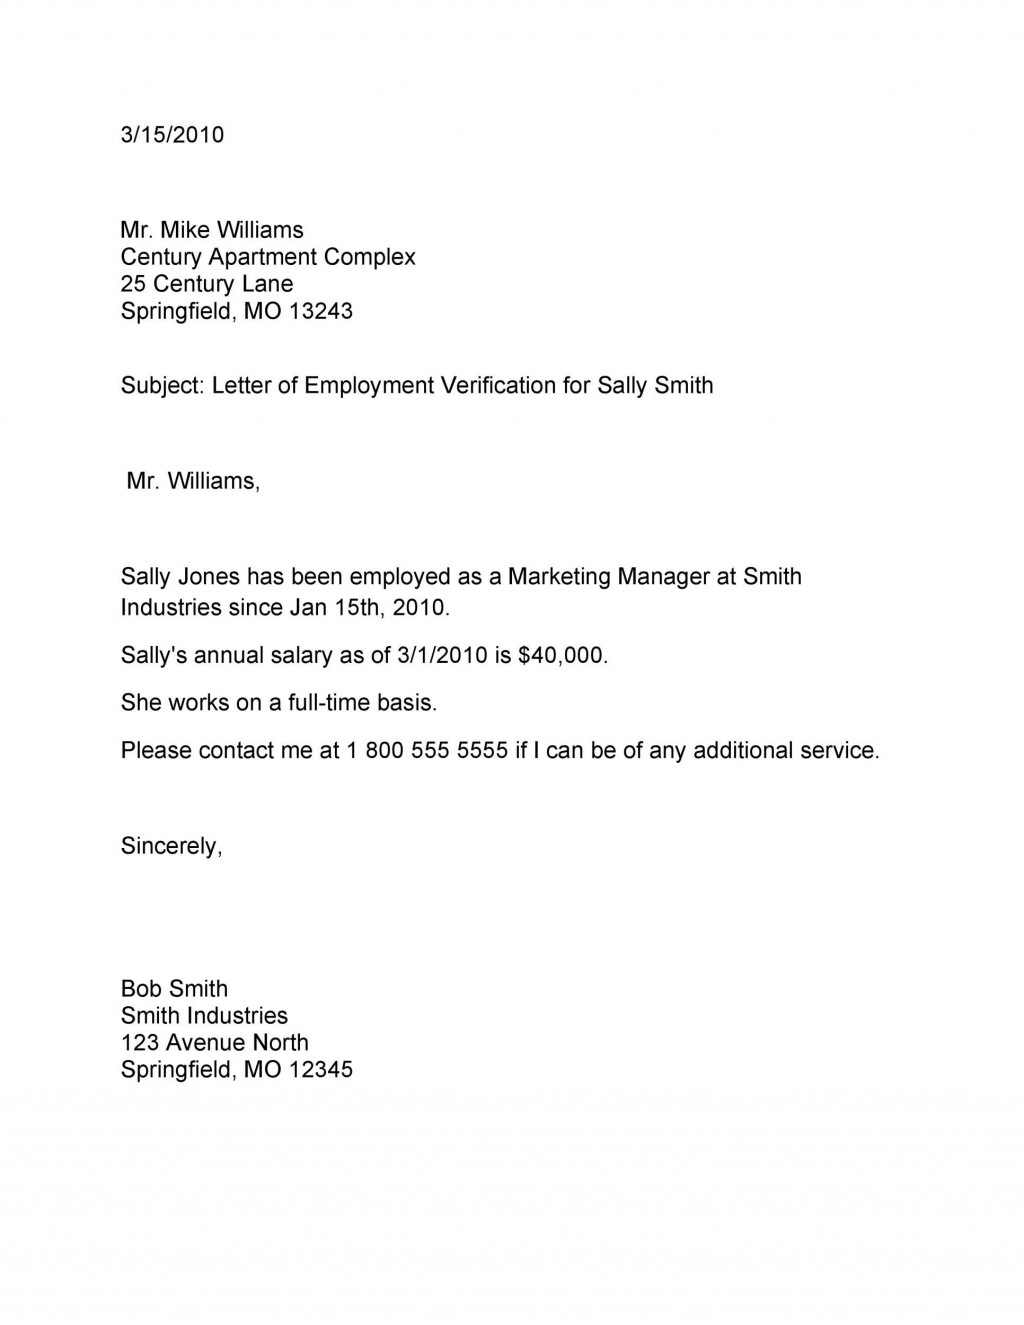 003 Unforgettable Employment Verification Letter Template Word Photo  South AfricaLarge